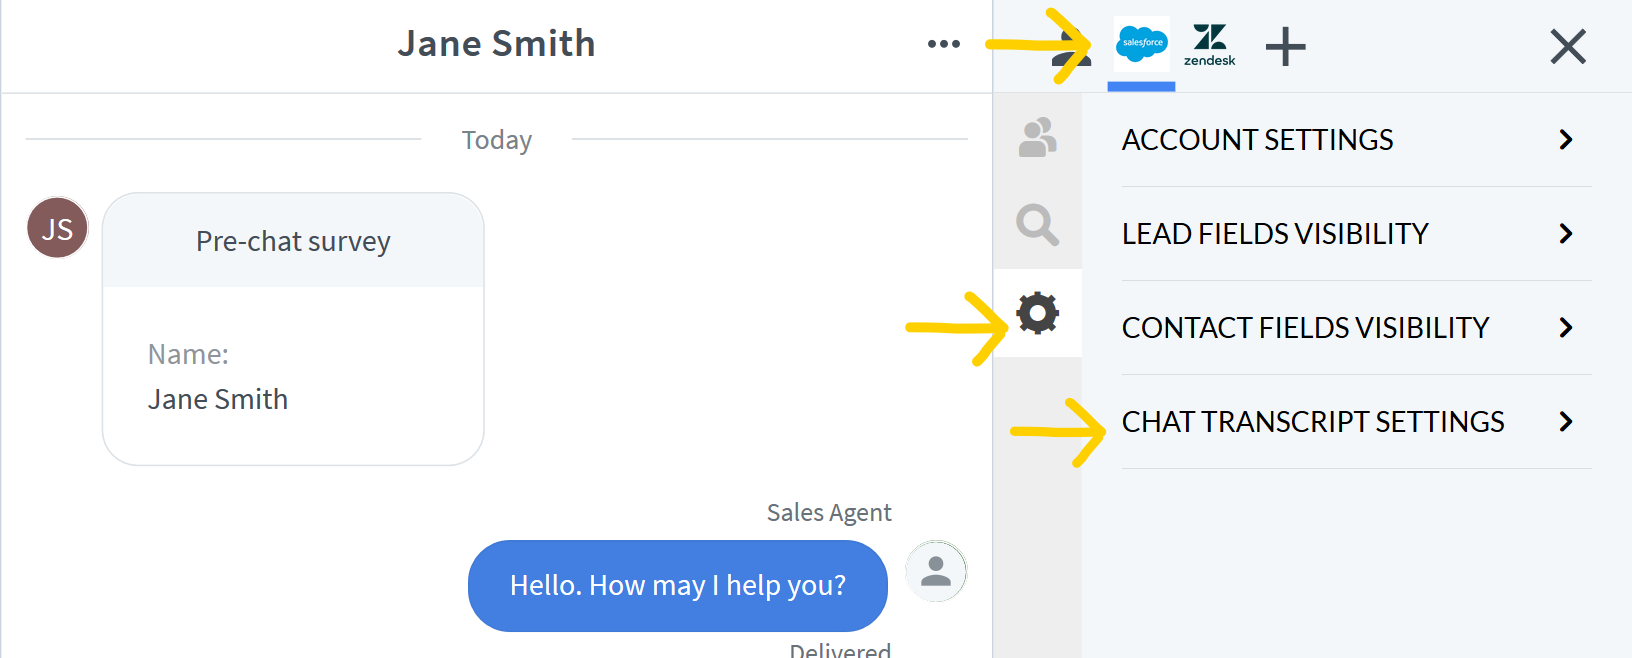 Add New Lead or New Contact